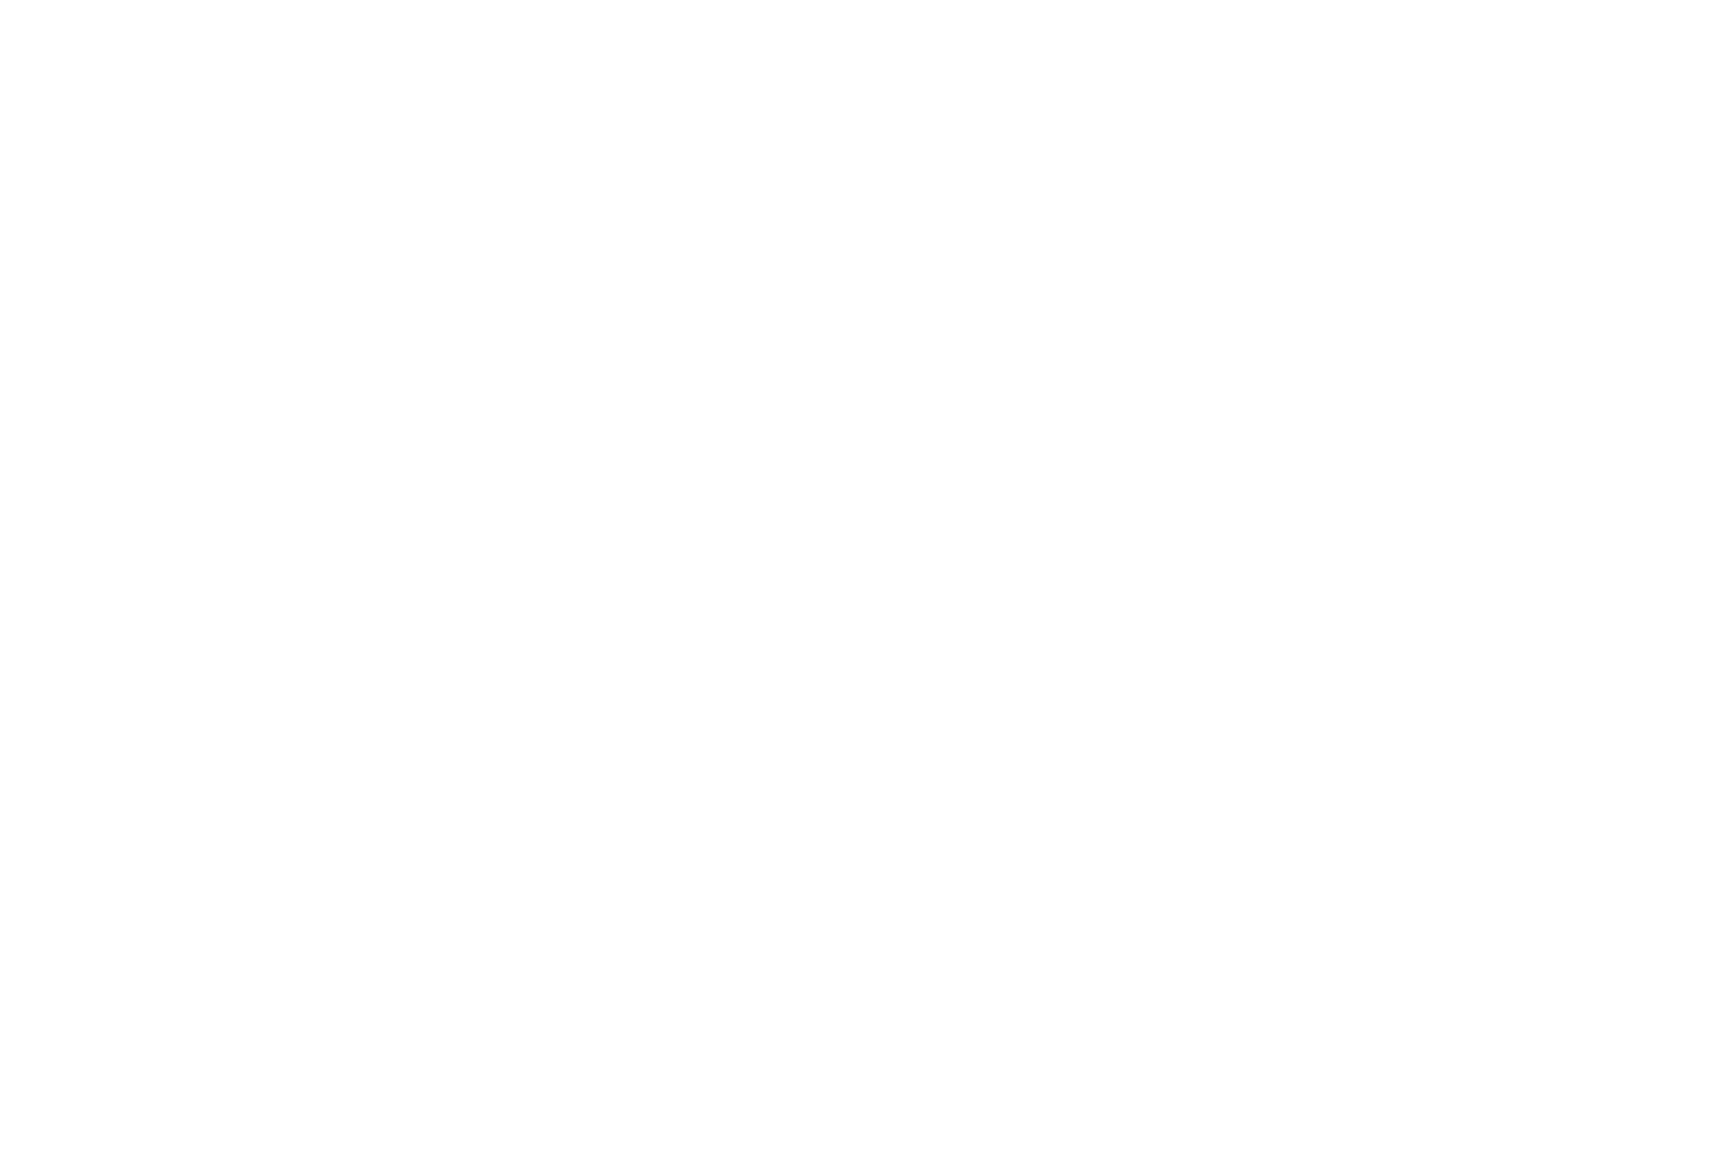 FINALIST - Hollywood Just4Shorts Film and Screenplay Competition - 2020